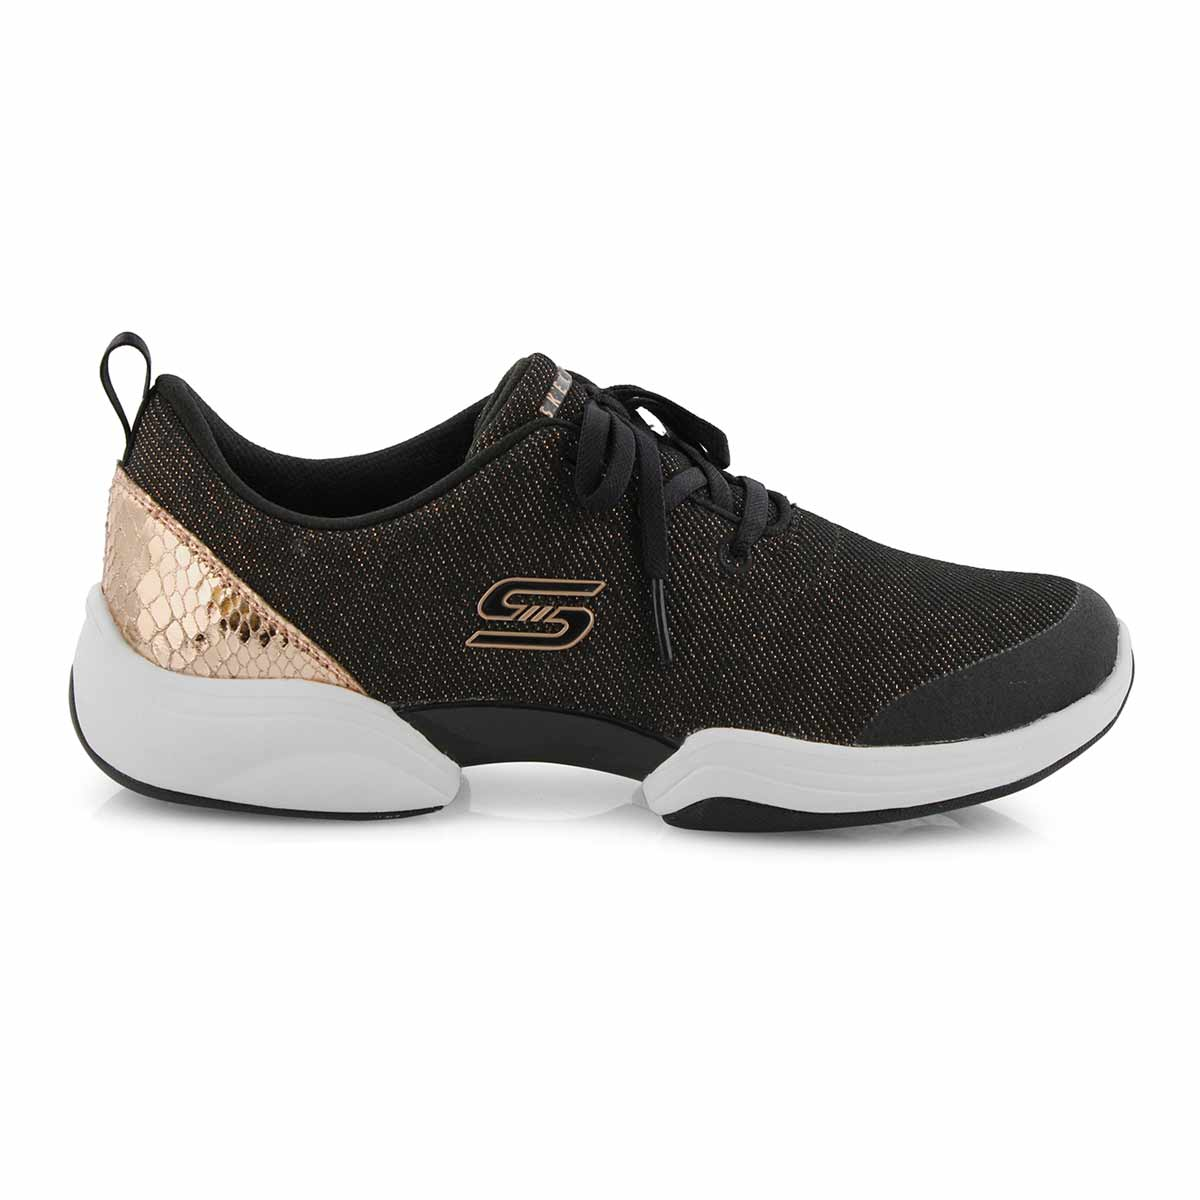 Lds Skech-Lab blk/rose slip on sneaker